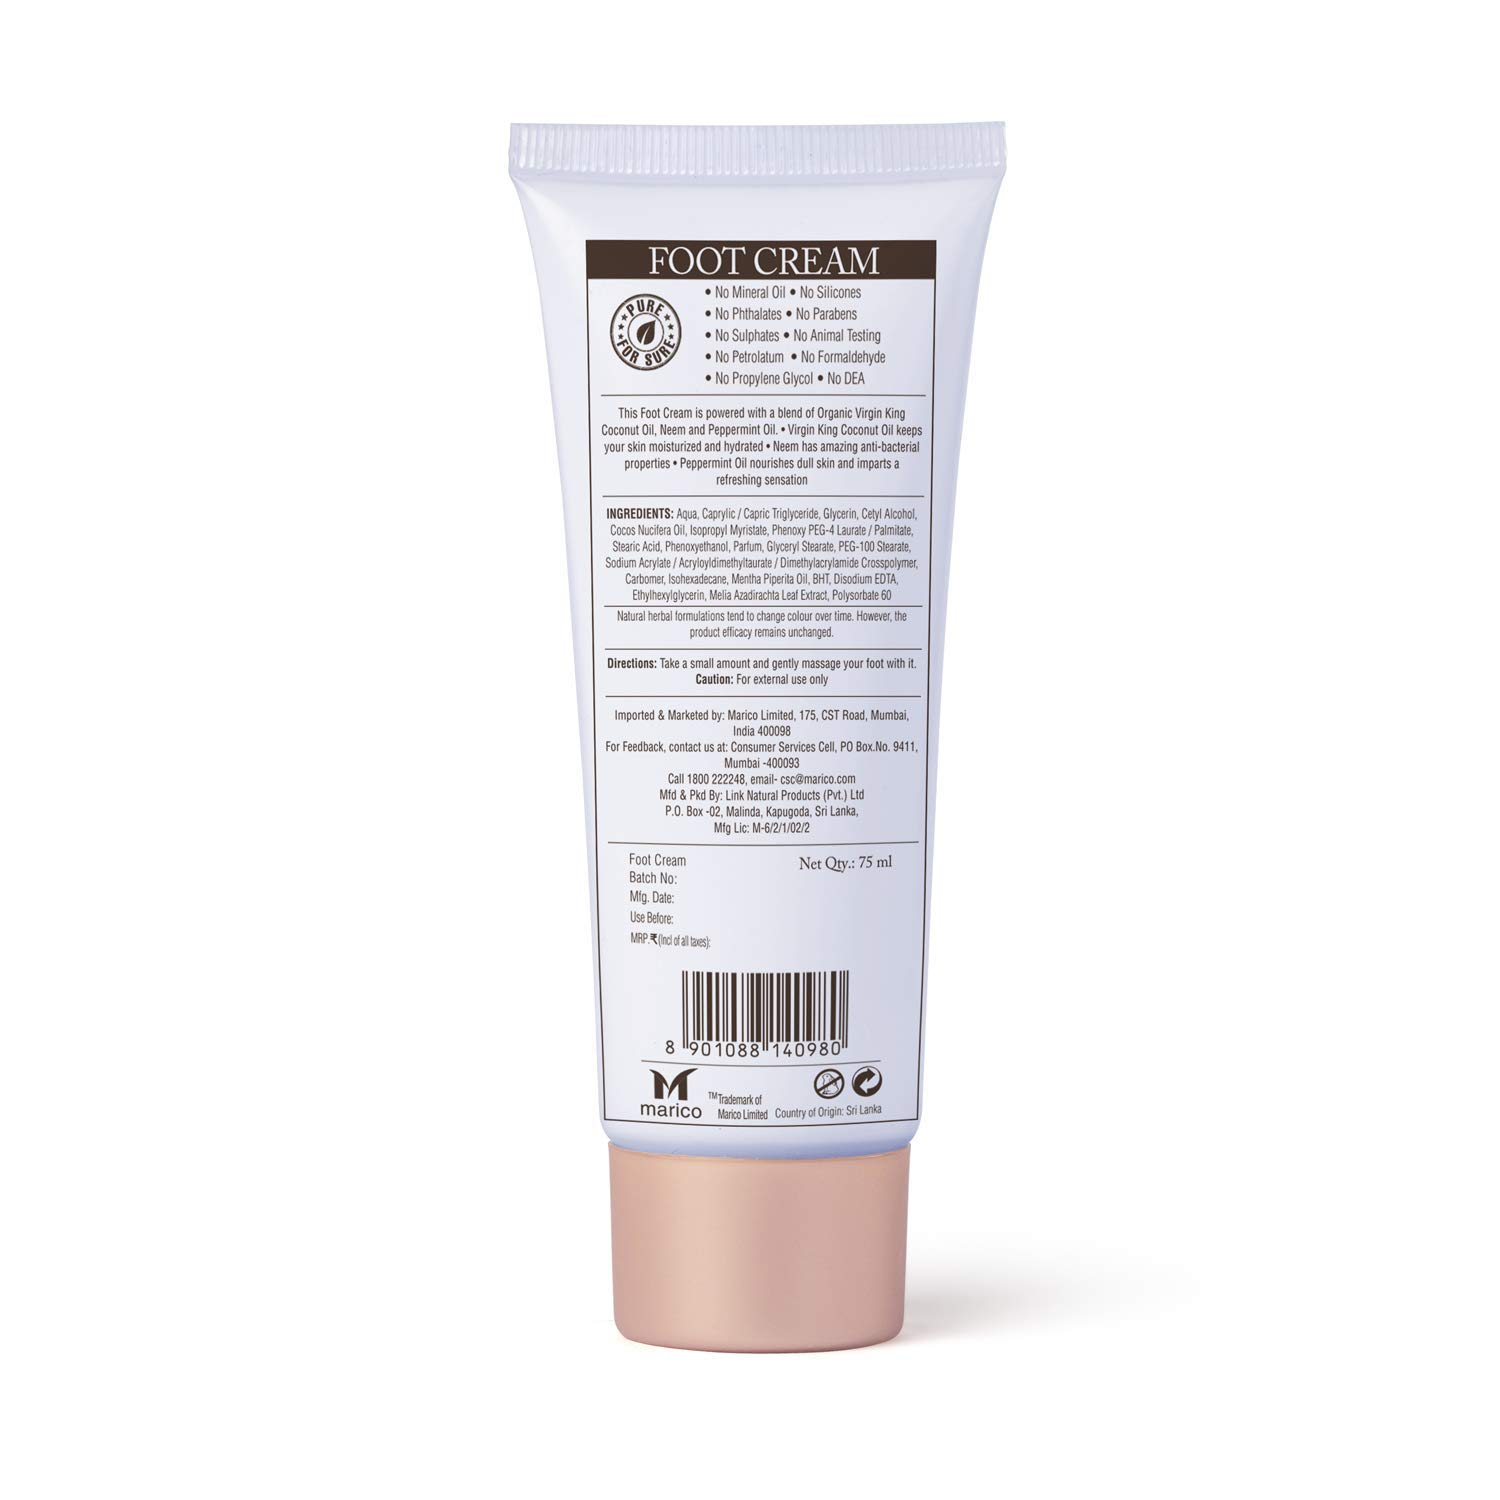 Coco Soul Ayurvedic & Coconut Foot Cream - 2.53 fl.oz. (75ml) - Neem & Peppermint Oil, Virgin King Coconut, Sulphate Free, Petroleum Free, Paraben Free, Silicone Free, Cruelty Free : Beauty